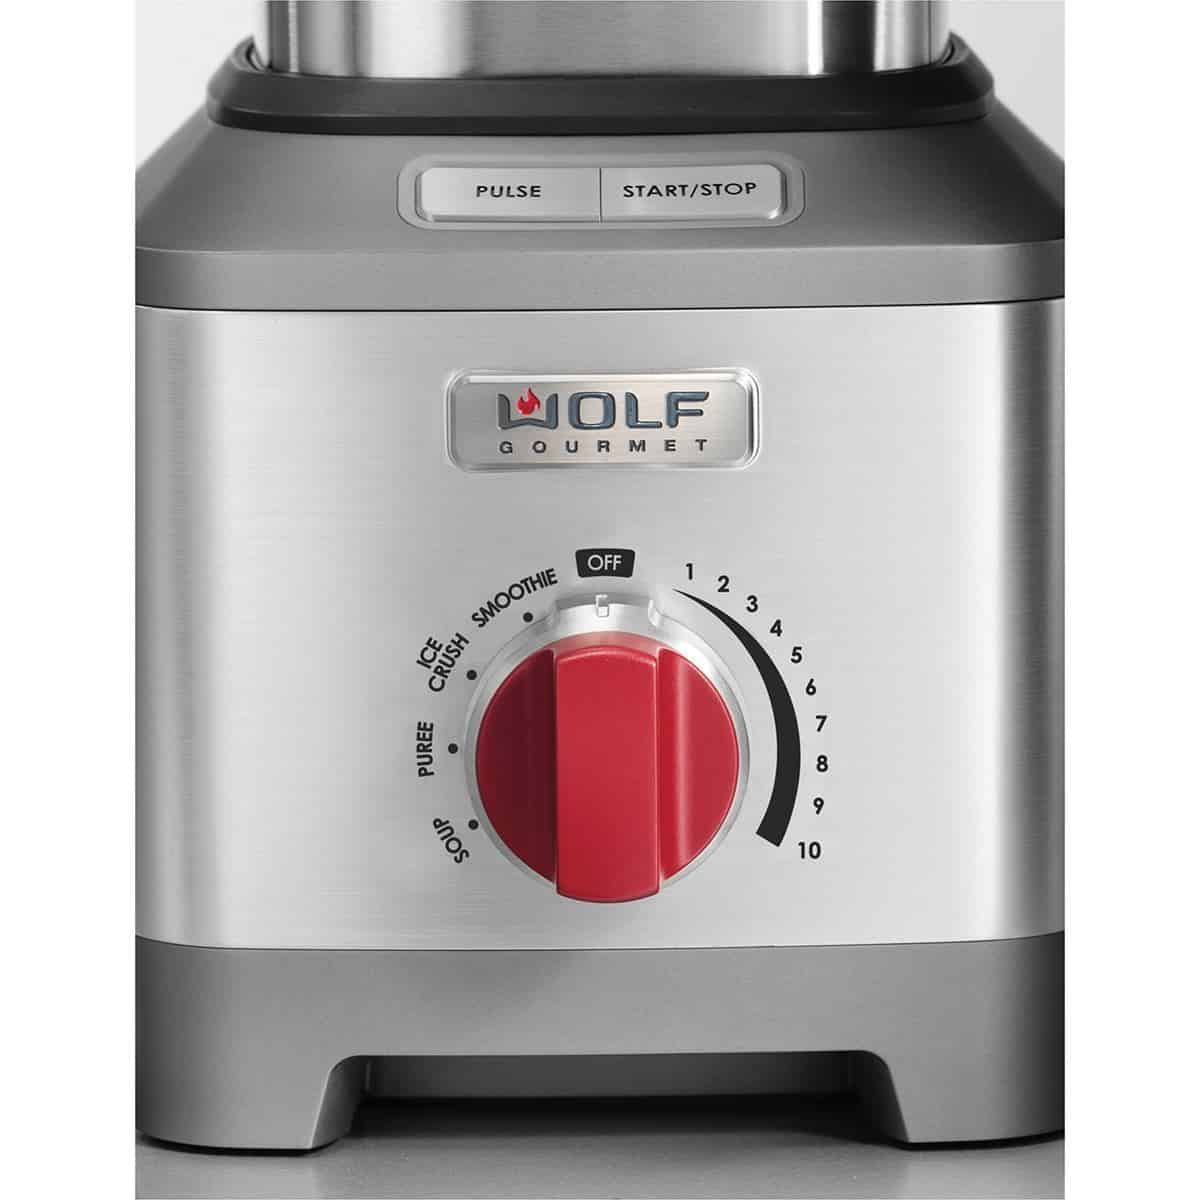 image of Wolf Gourmet Pro Performance Blender control panel